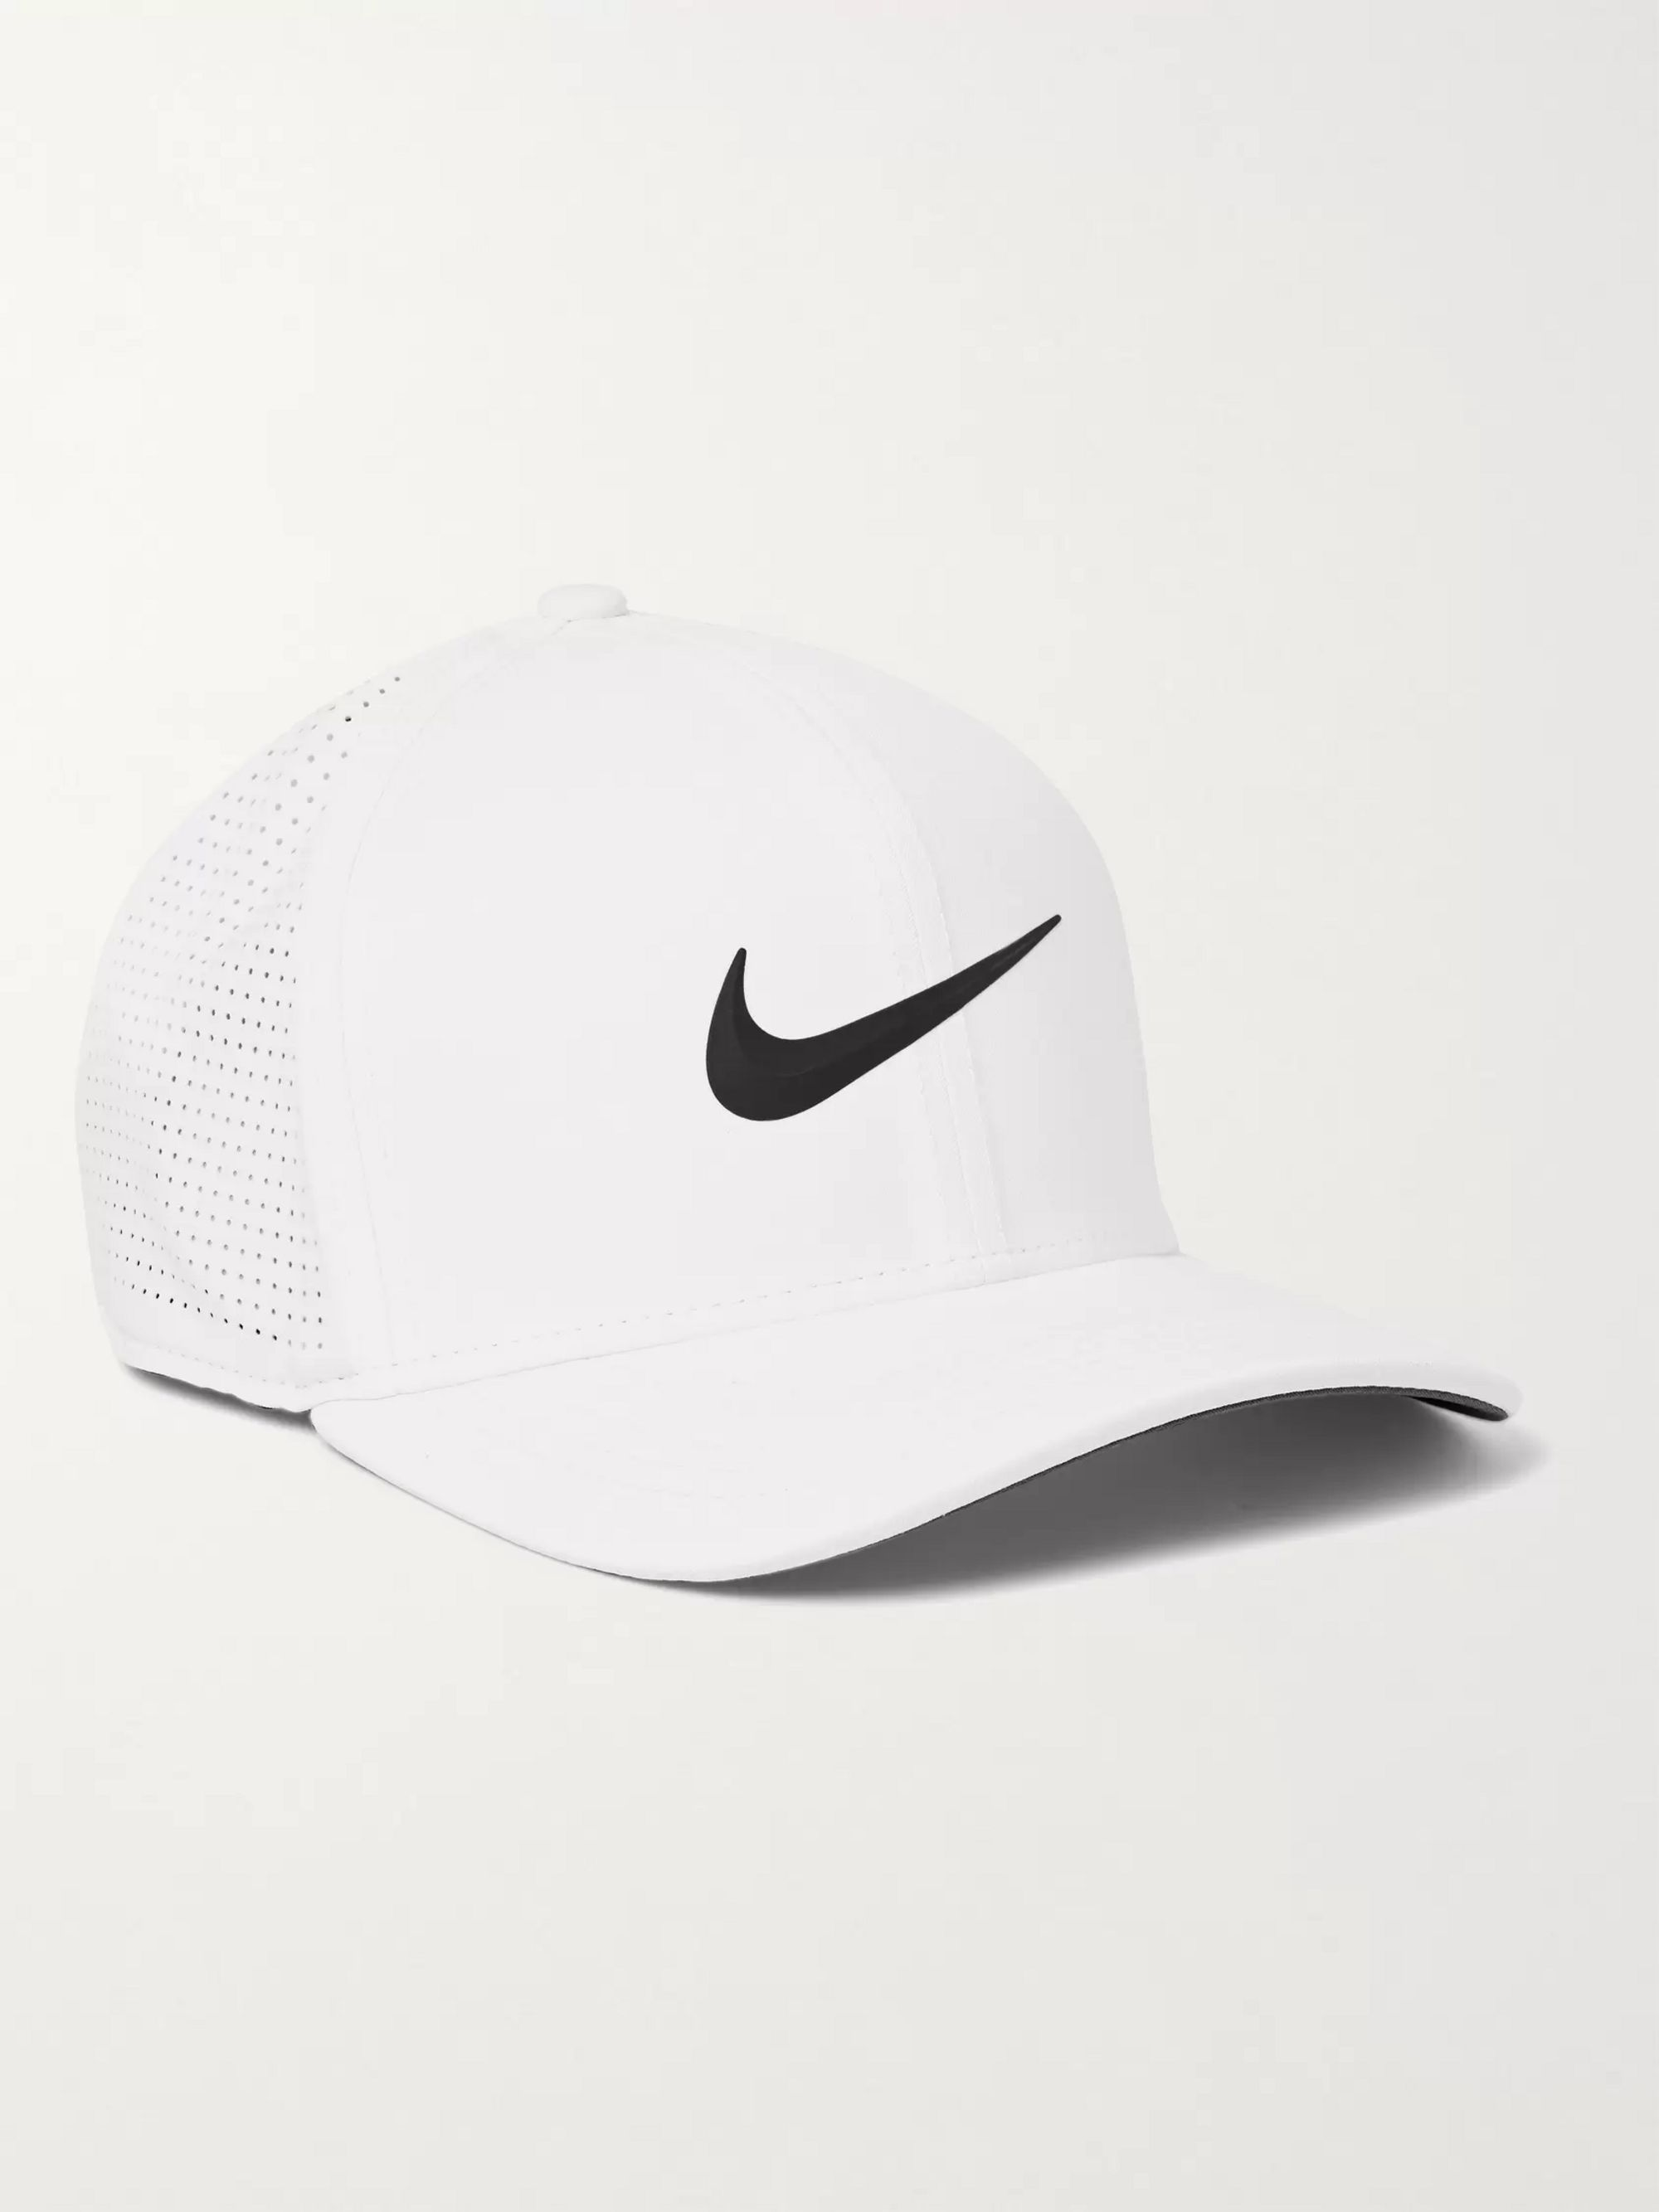 Nike Golf Aerobill Classic 99 Perforated Dri-FIT Golf Cap